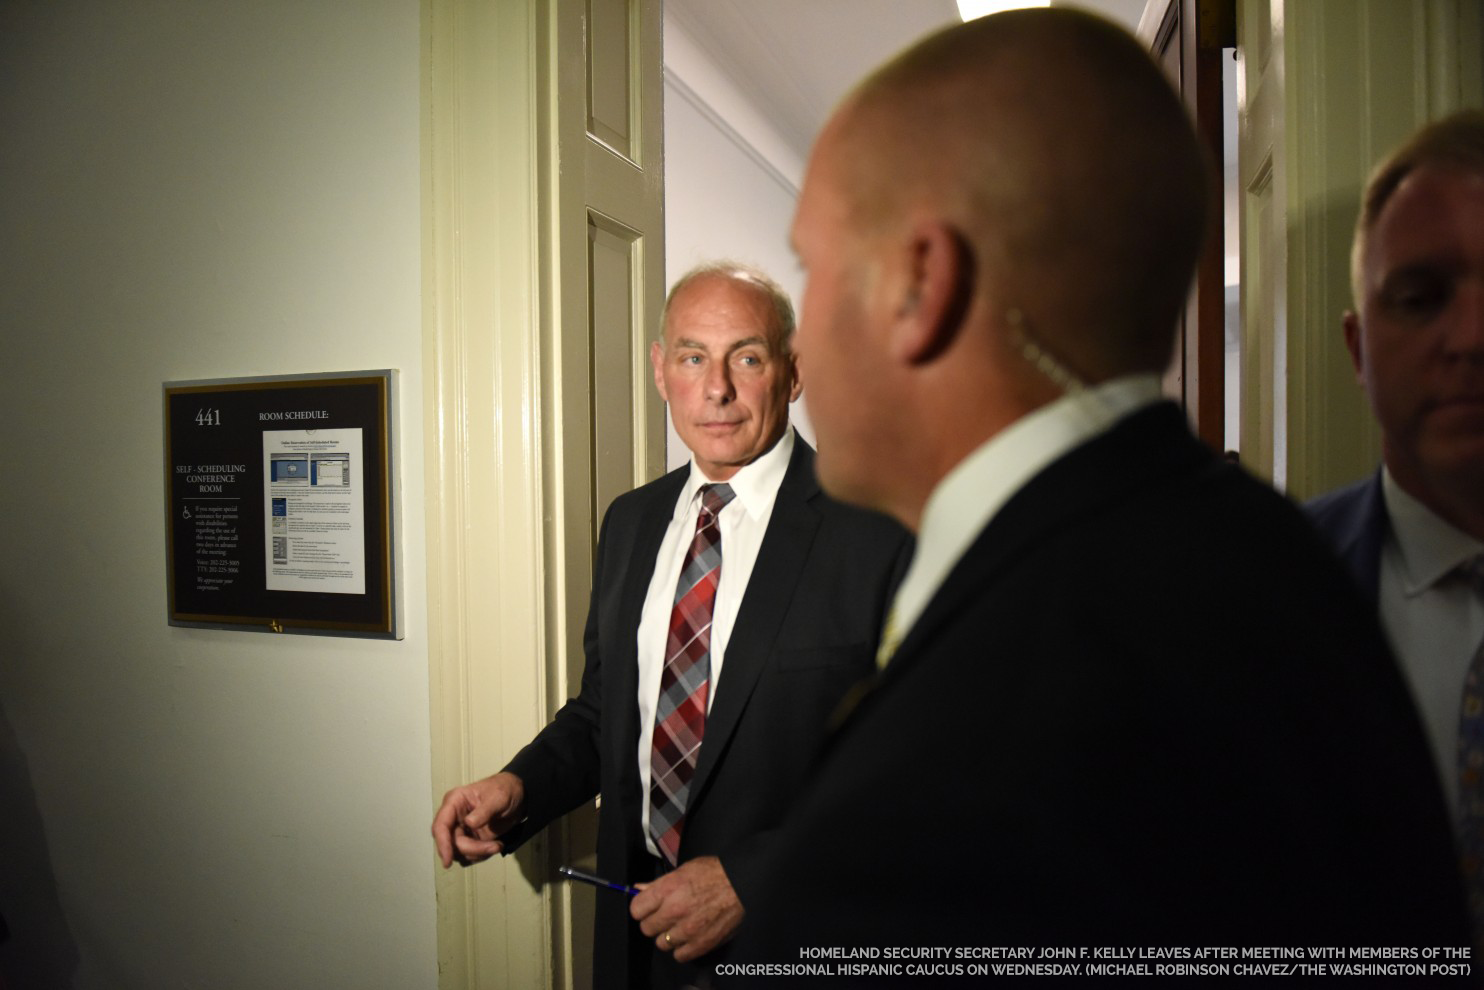 Homeland Security Secretary John F. Kelly leaves after meeting with members of the Congressional Hispanic Caucus on Wednesday. (Michael Robinson Chavez/The Washington Post)